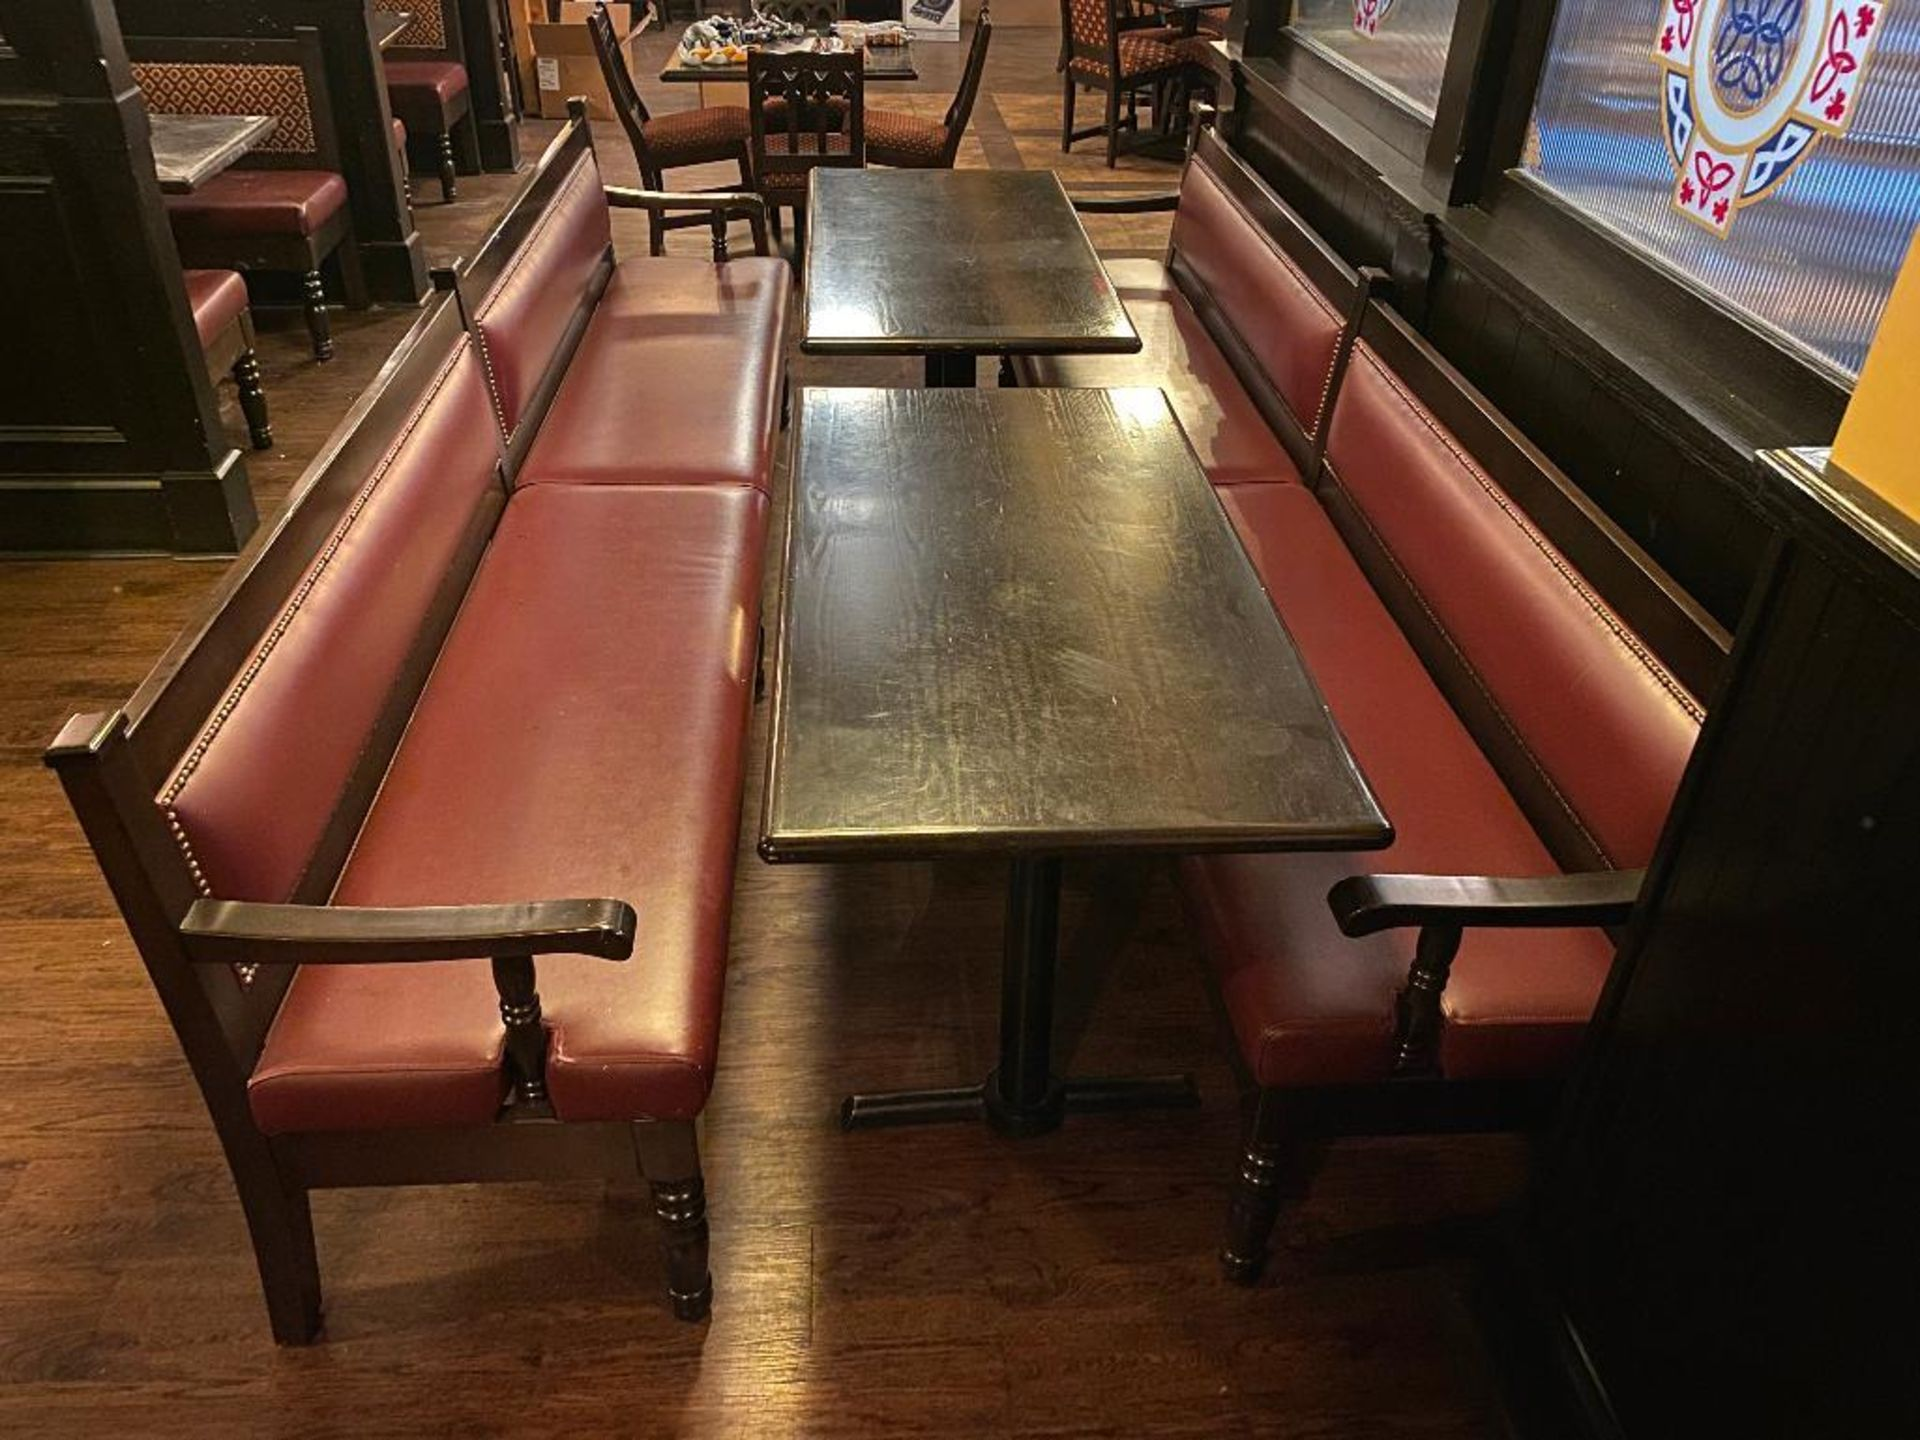 LOT OF (2) RECTANGULAR TABLE WITH (2) 10' BURGUNDY BENCHES - Image 3 of 4